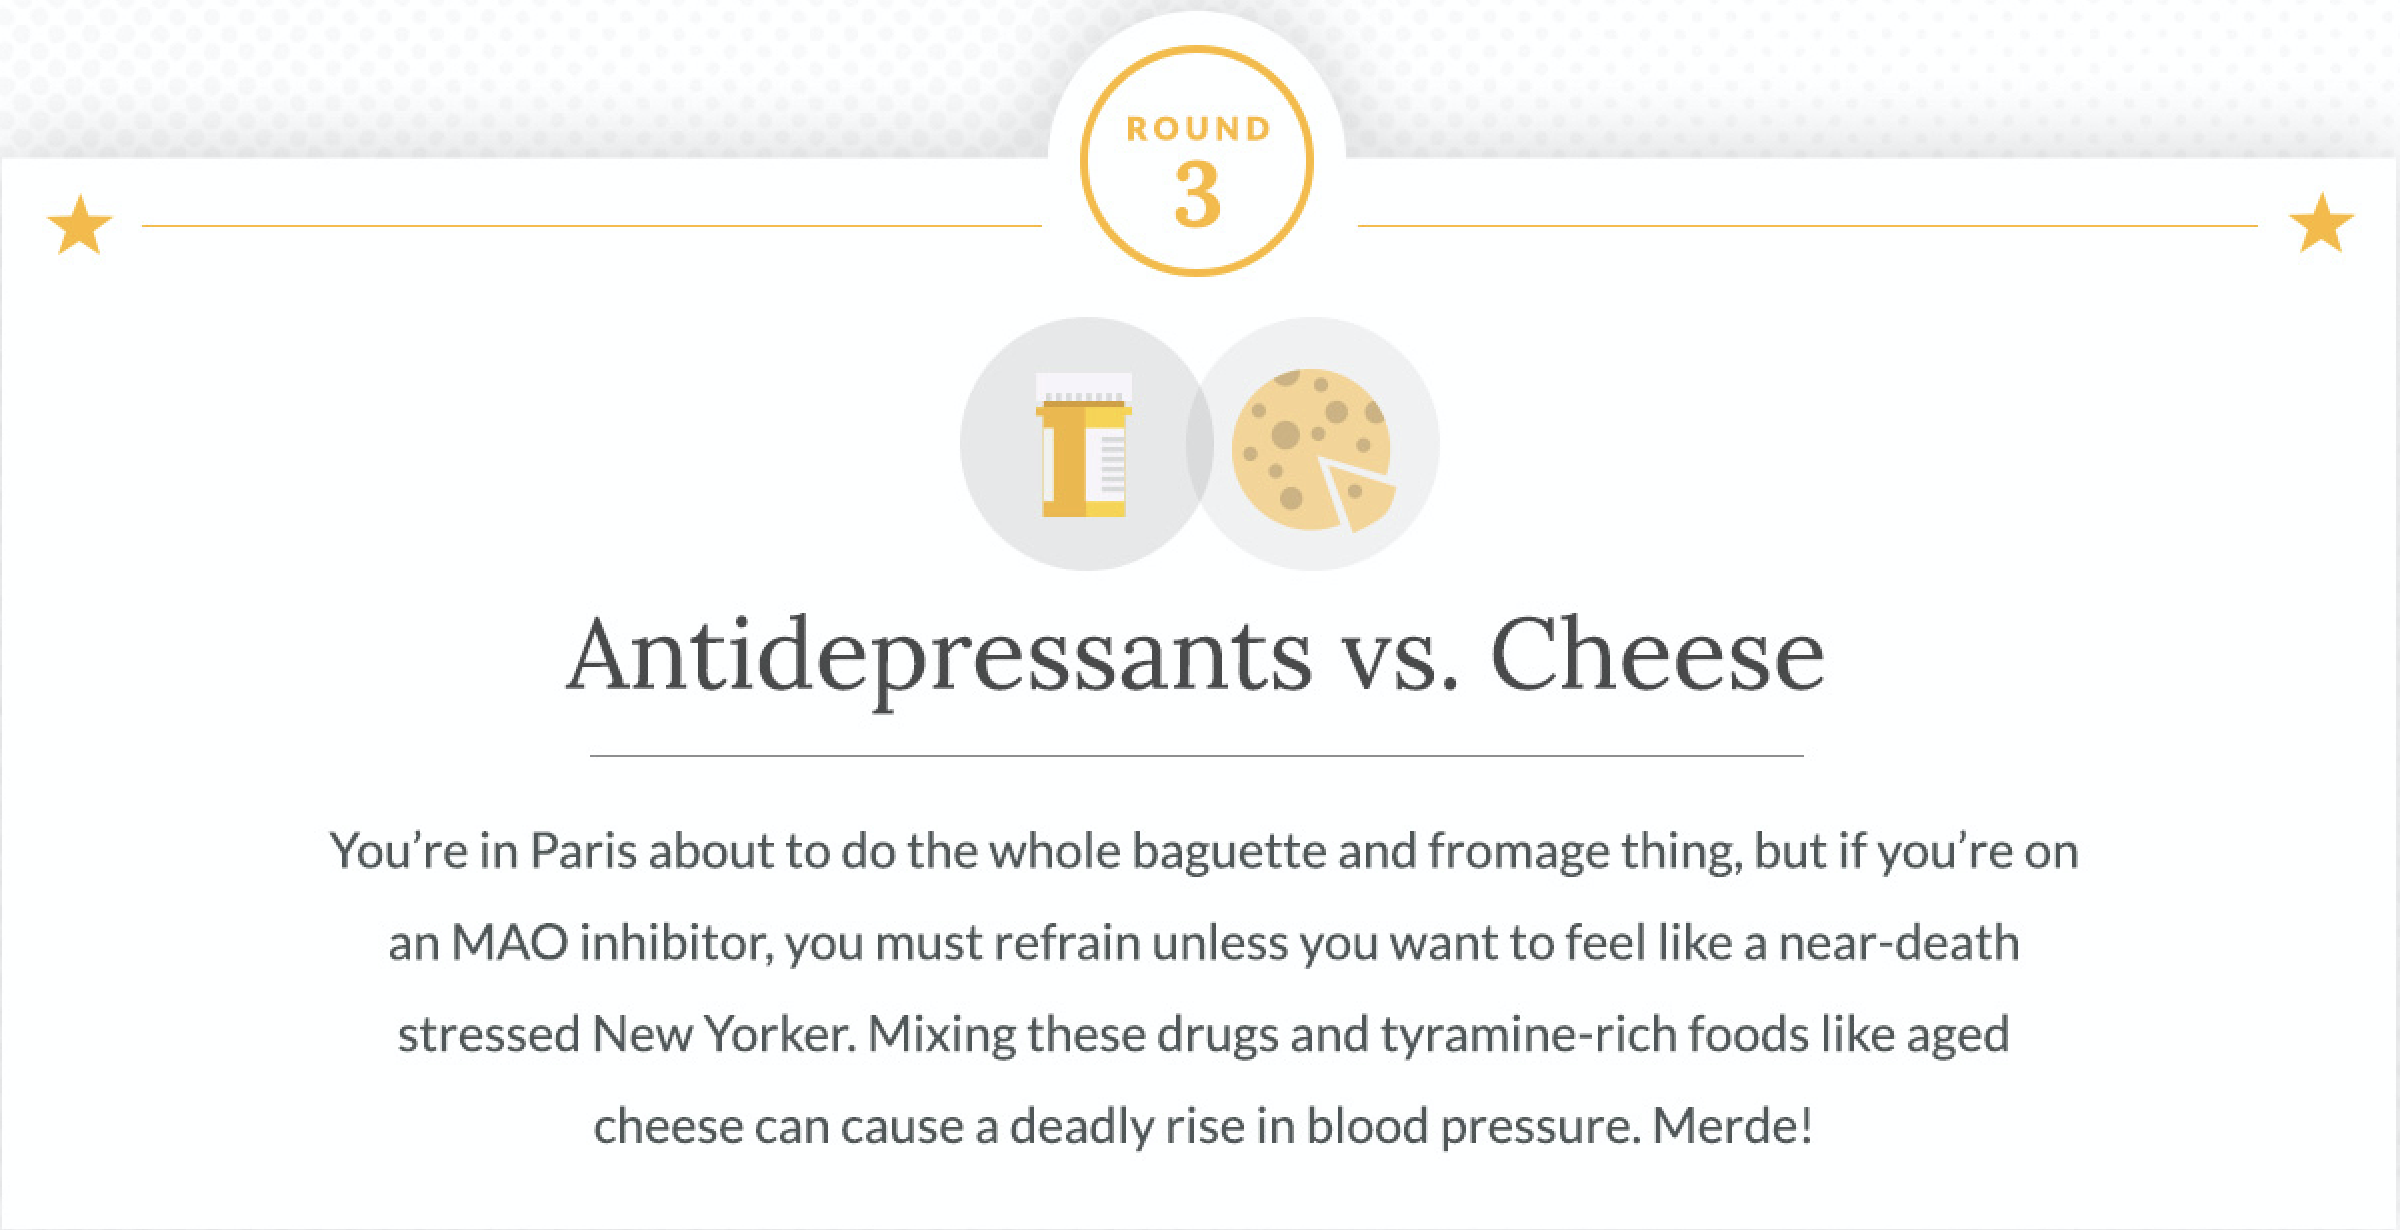 Antidepressants and Cheese